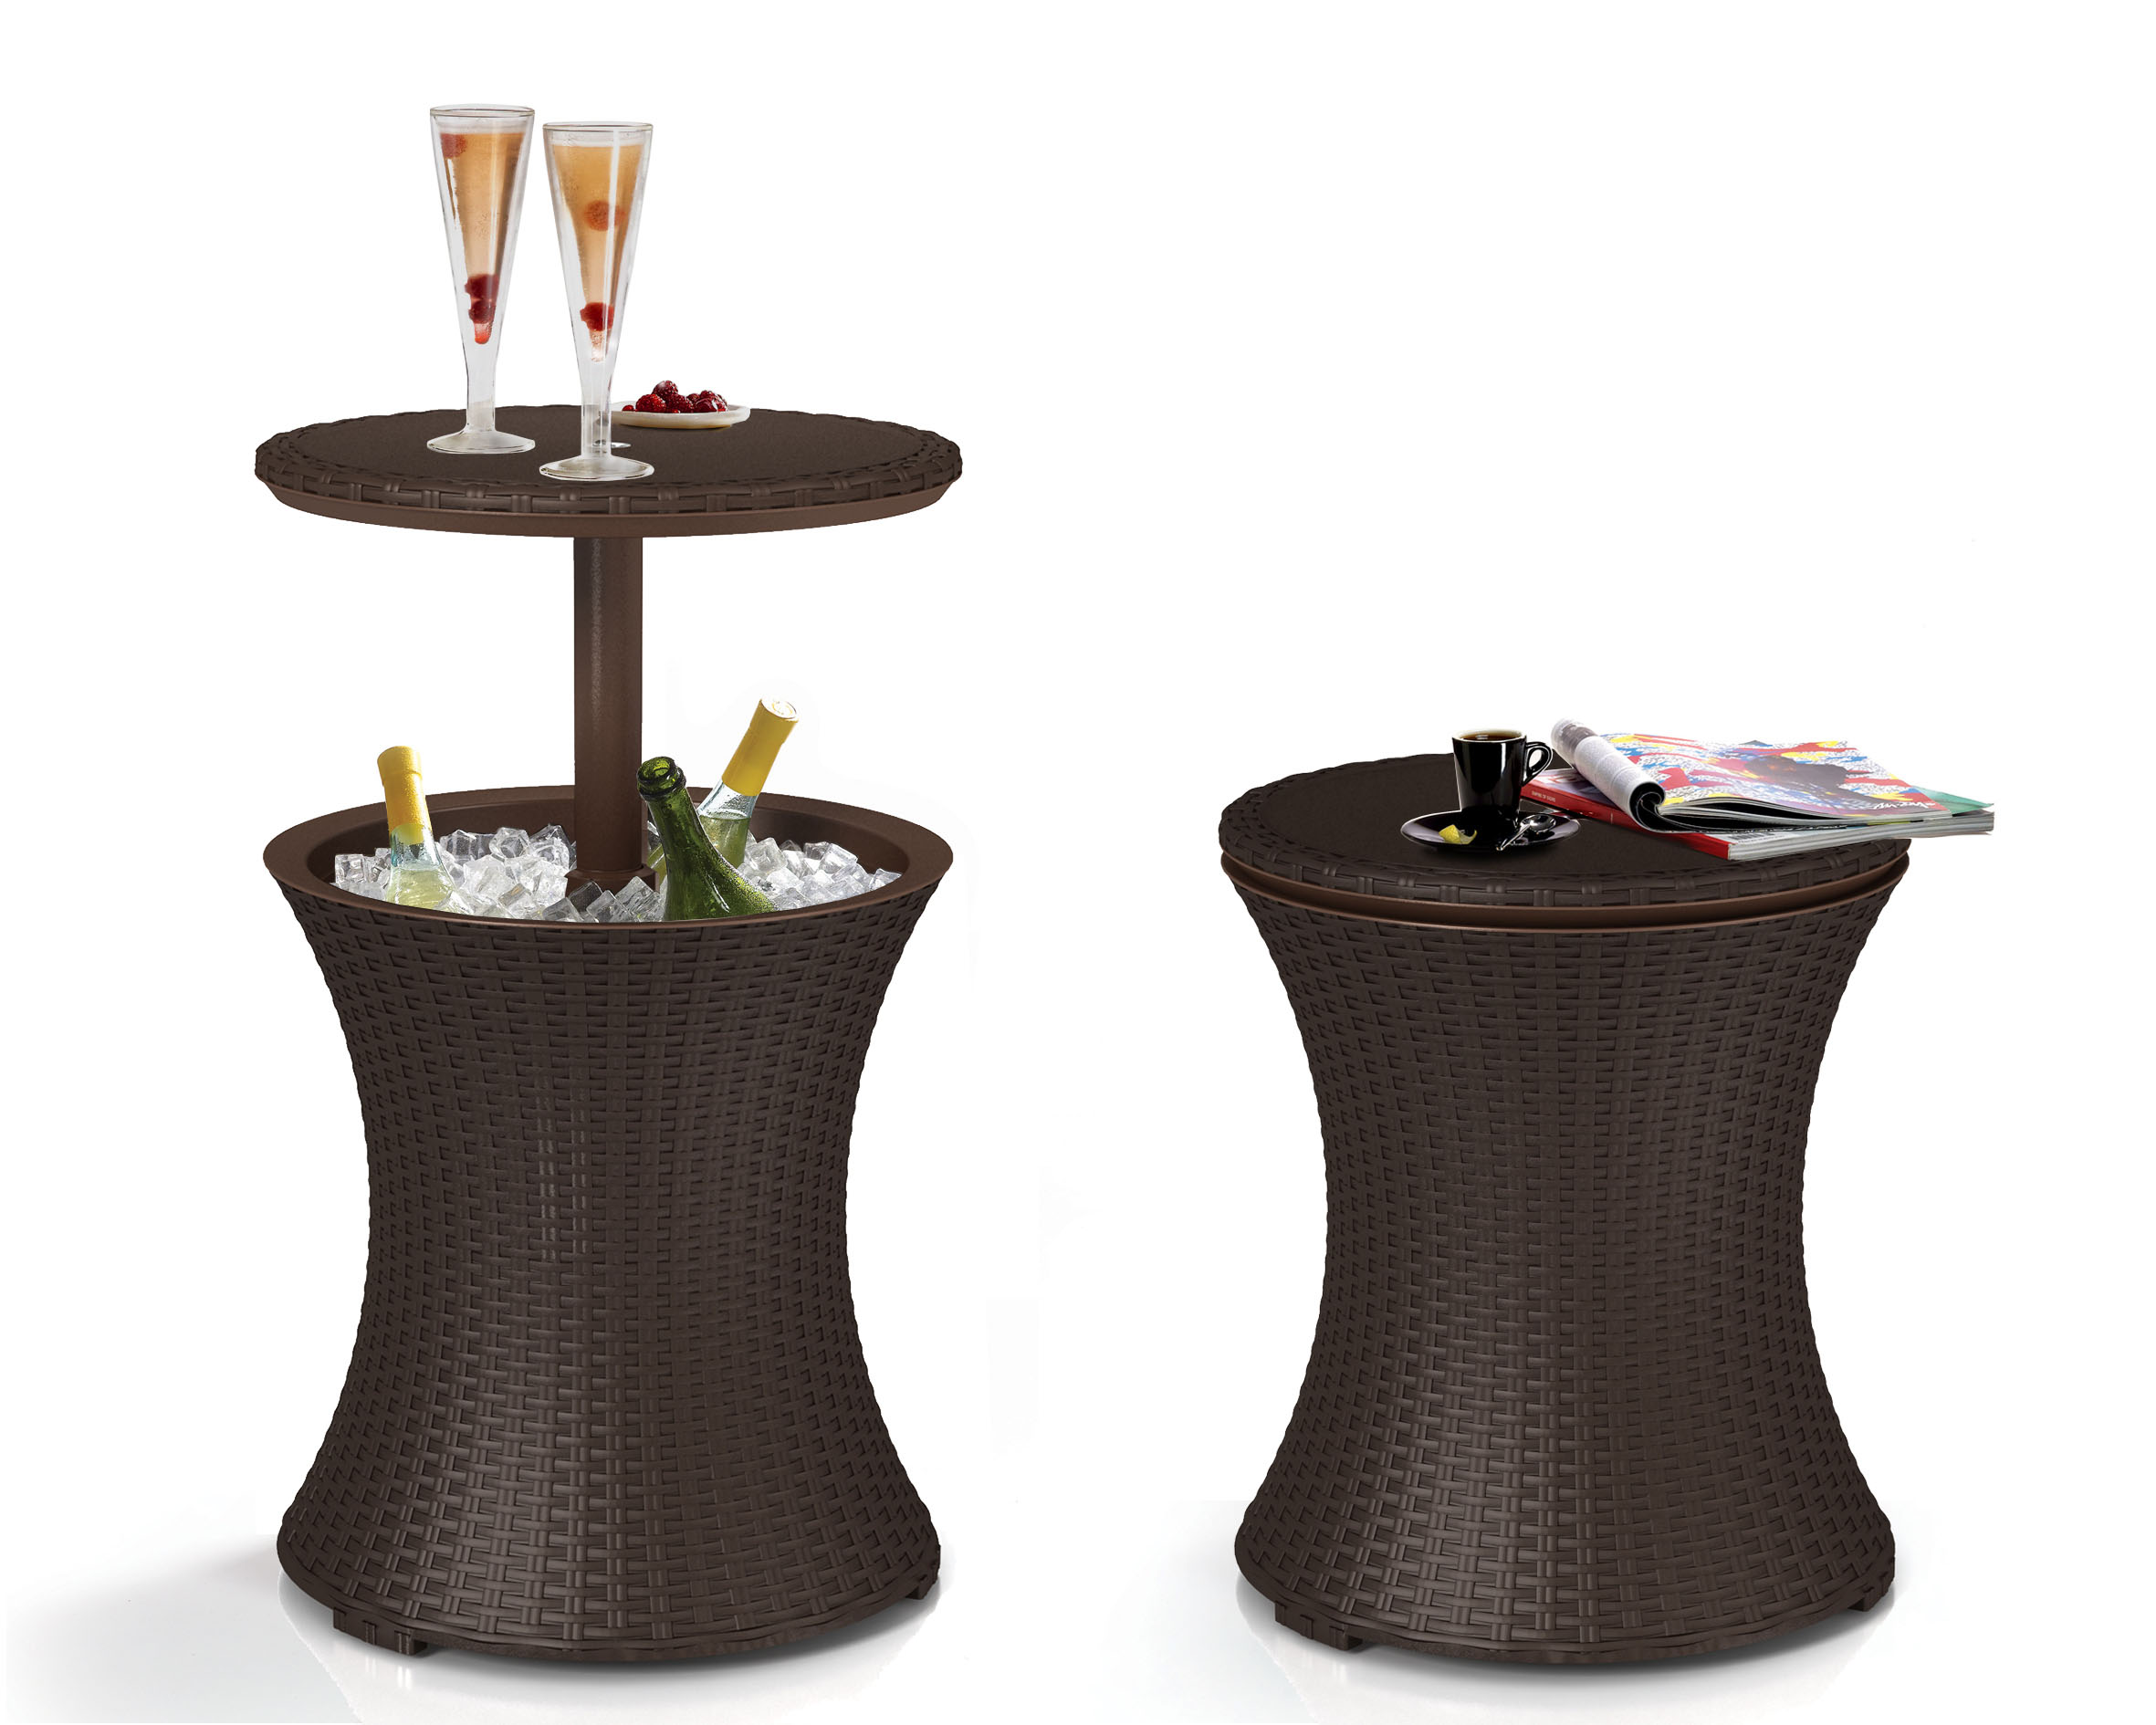 keter pacific 7 5 gallon cool bar resin outdoor patio beverage cooler table extra storage rattan look brown